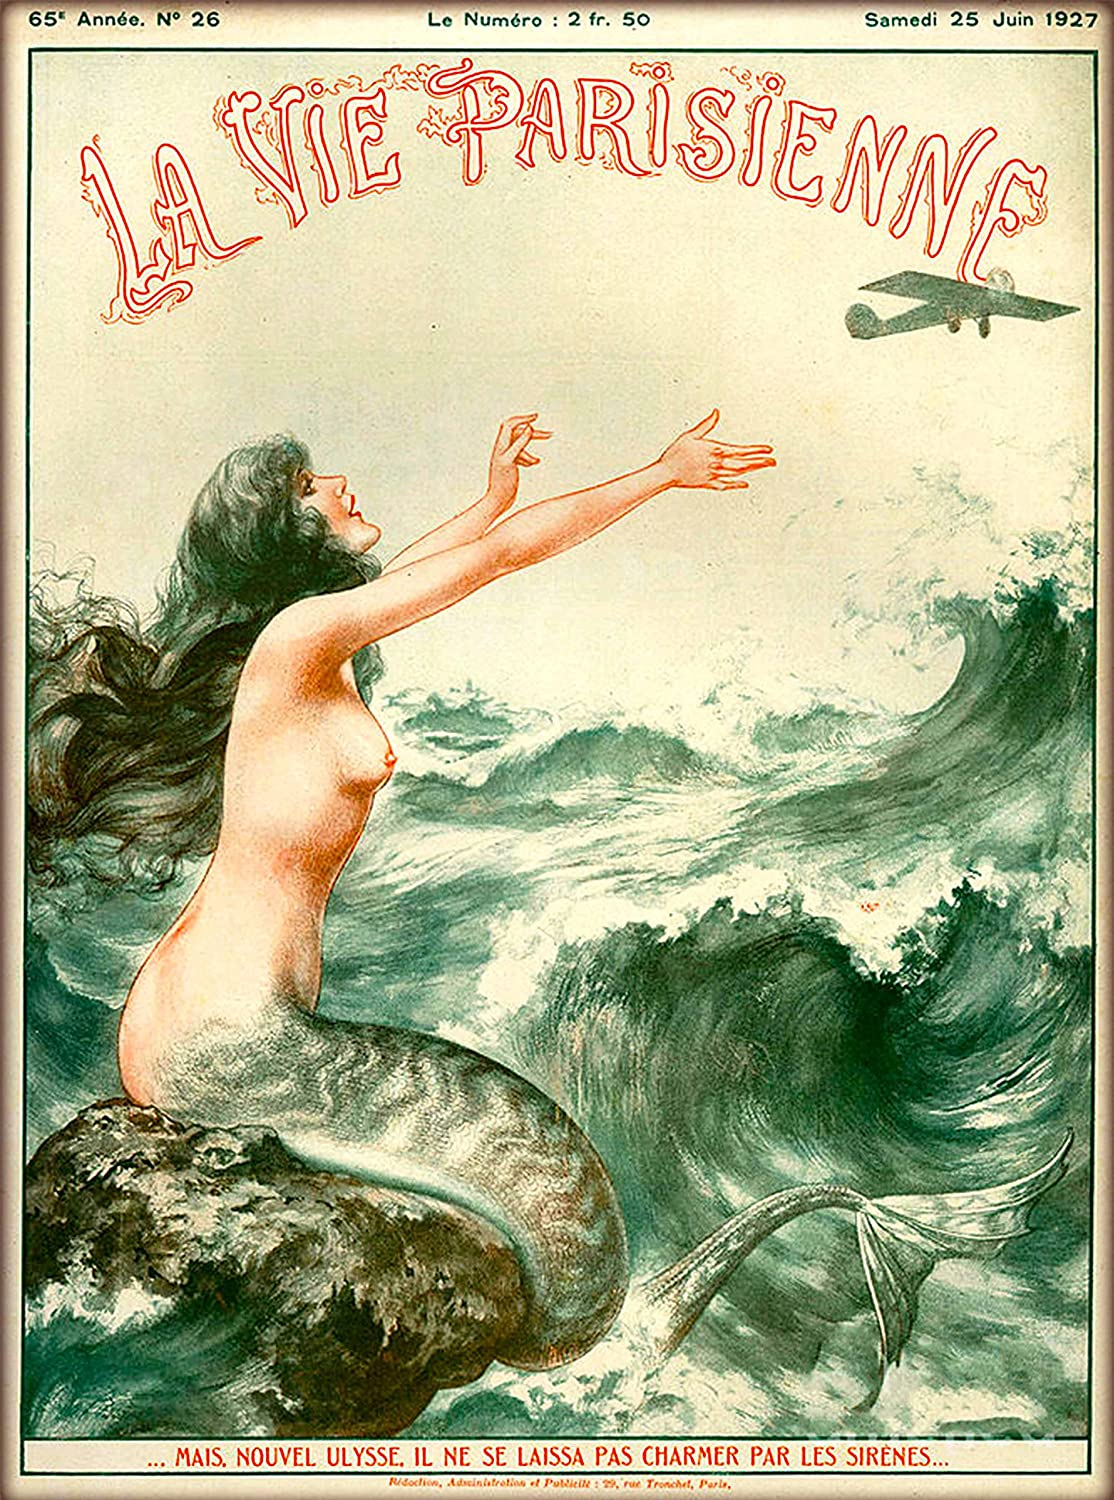 1927 La Vie Parisienne The Mermaid and the Airplane French Nouveau from a Magazine France Travel Advertisement Collectible Wall Decor Picture Art Poster Print. Poster measures 10 x 13.5 inches